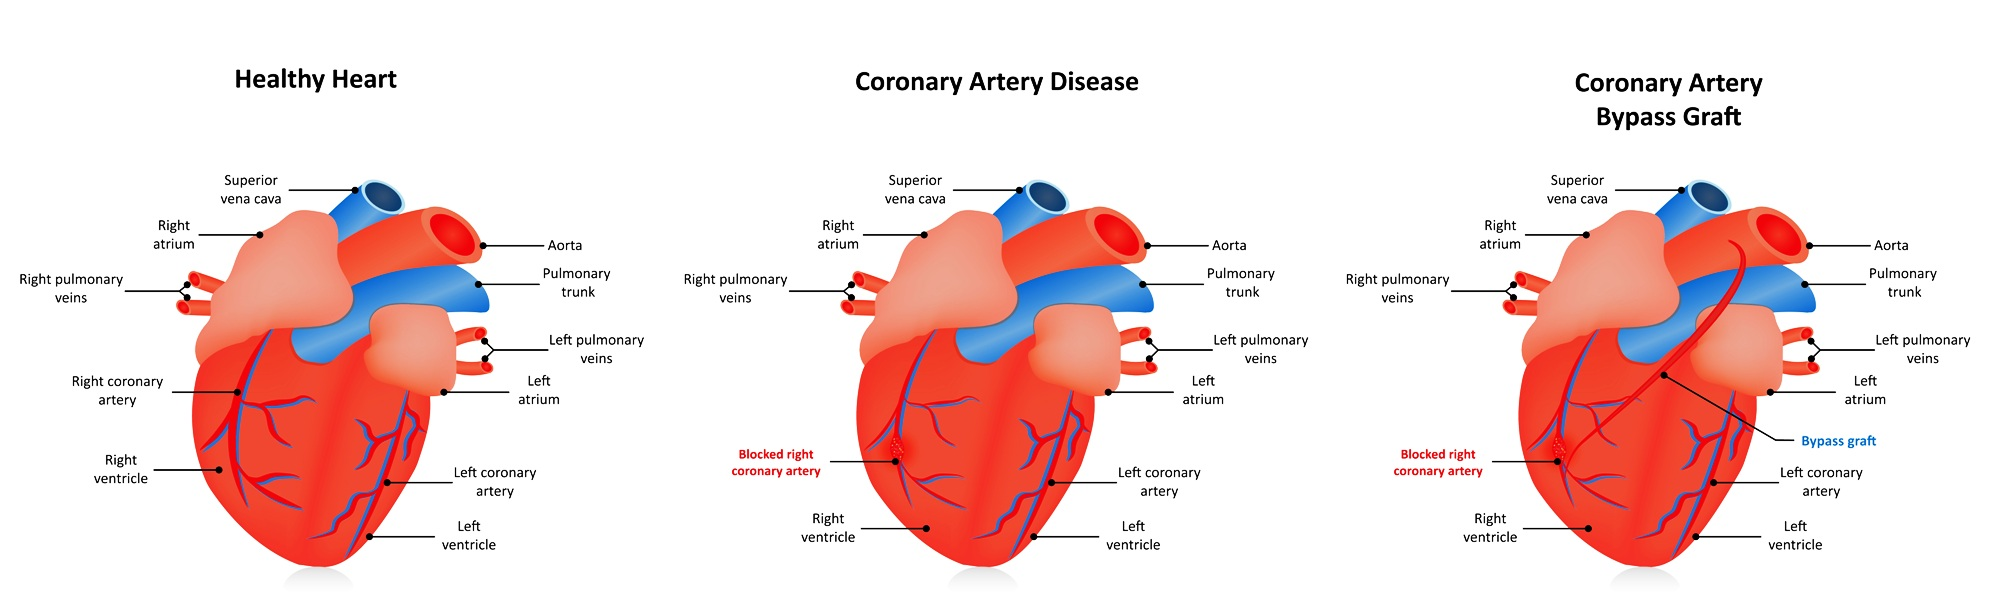 Heart after coronary artery bypass surgery